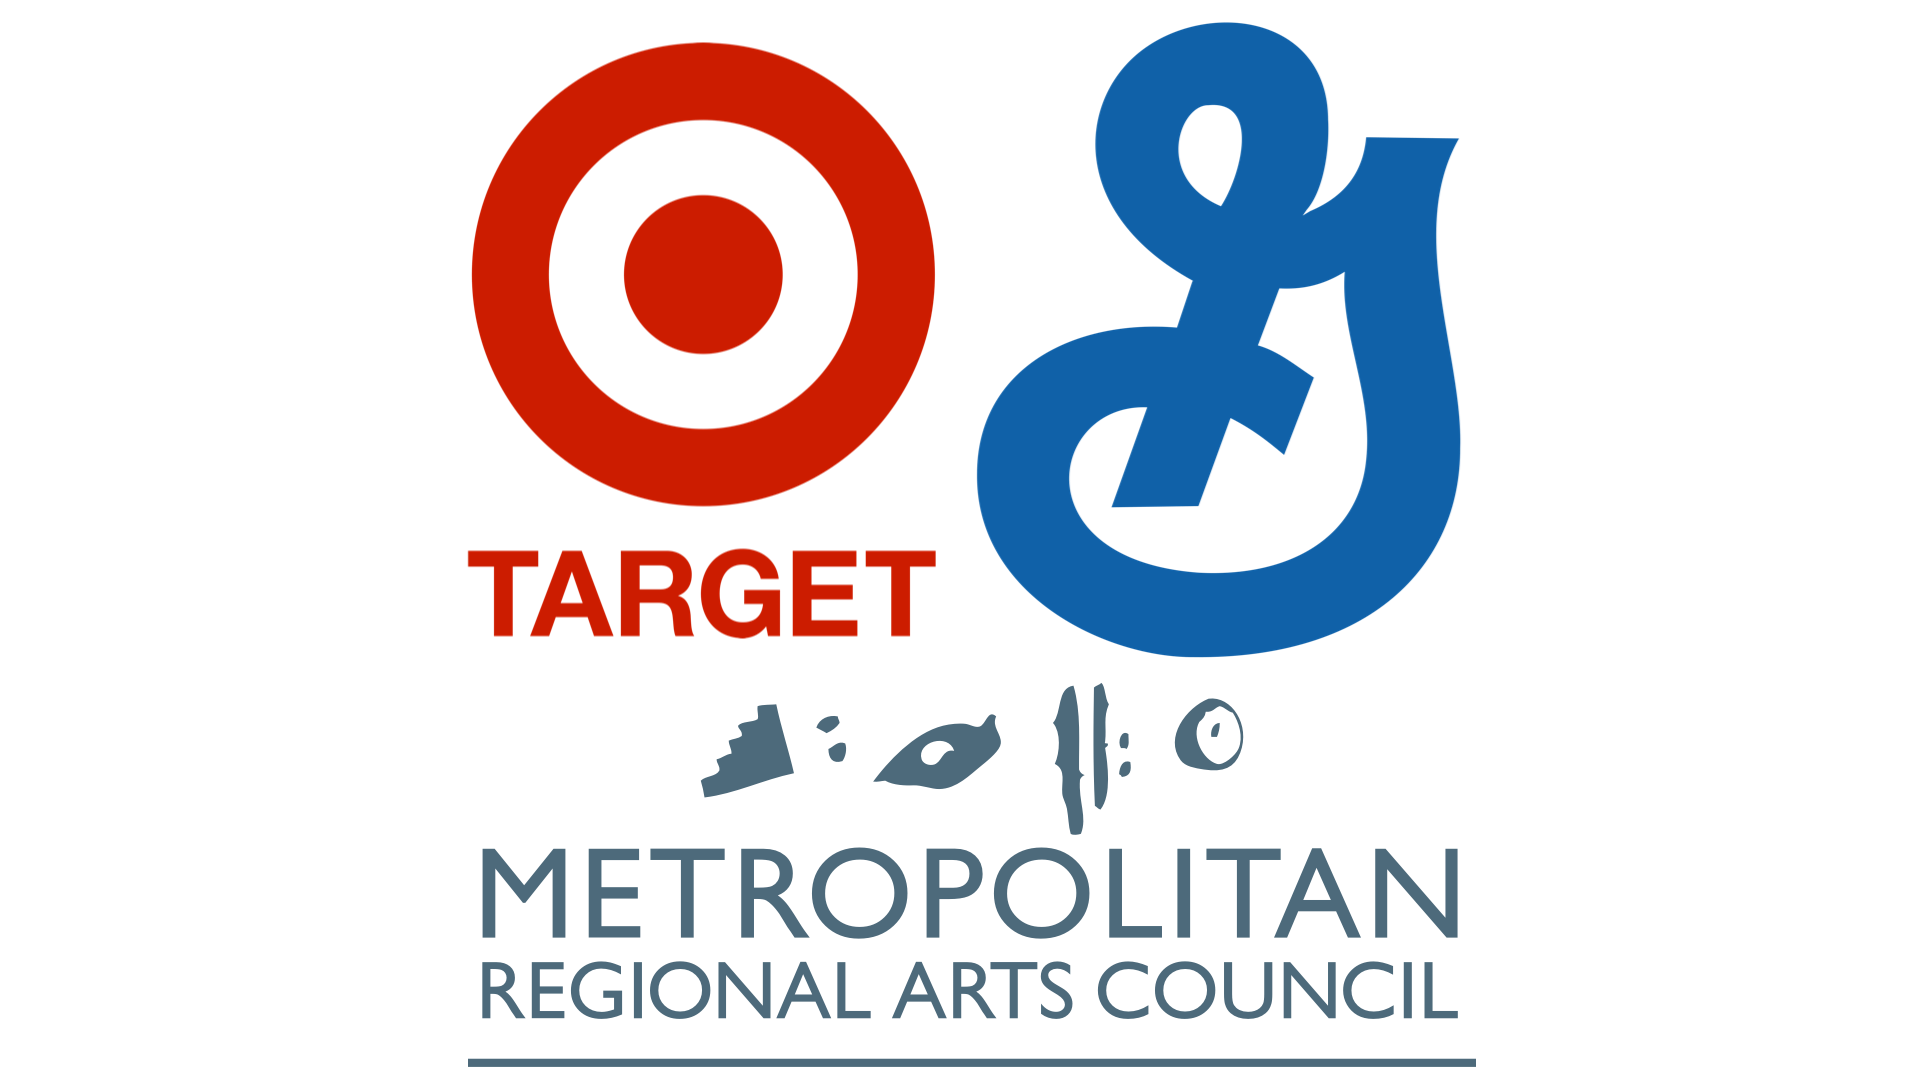 Logos of Target, General Mills, and Metropolitan Regional Arts Council